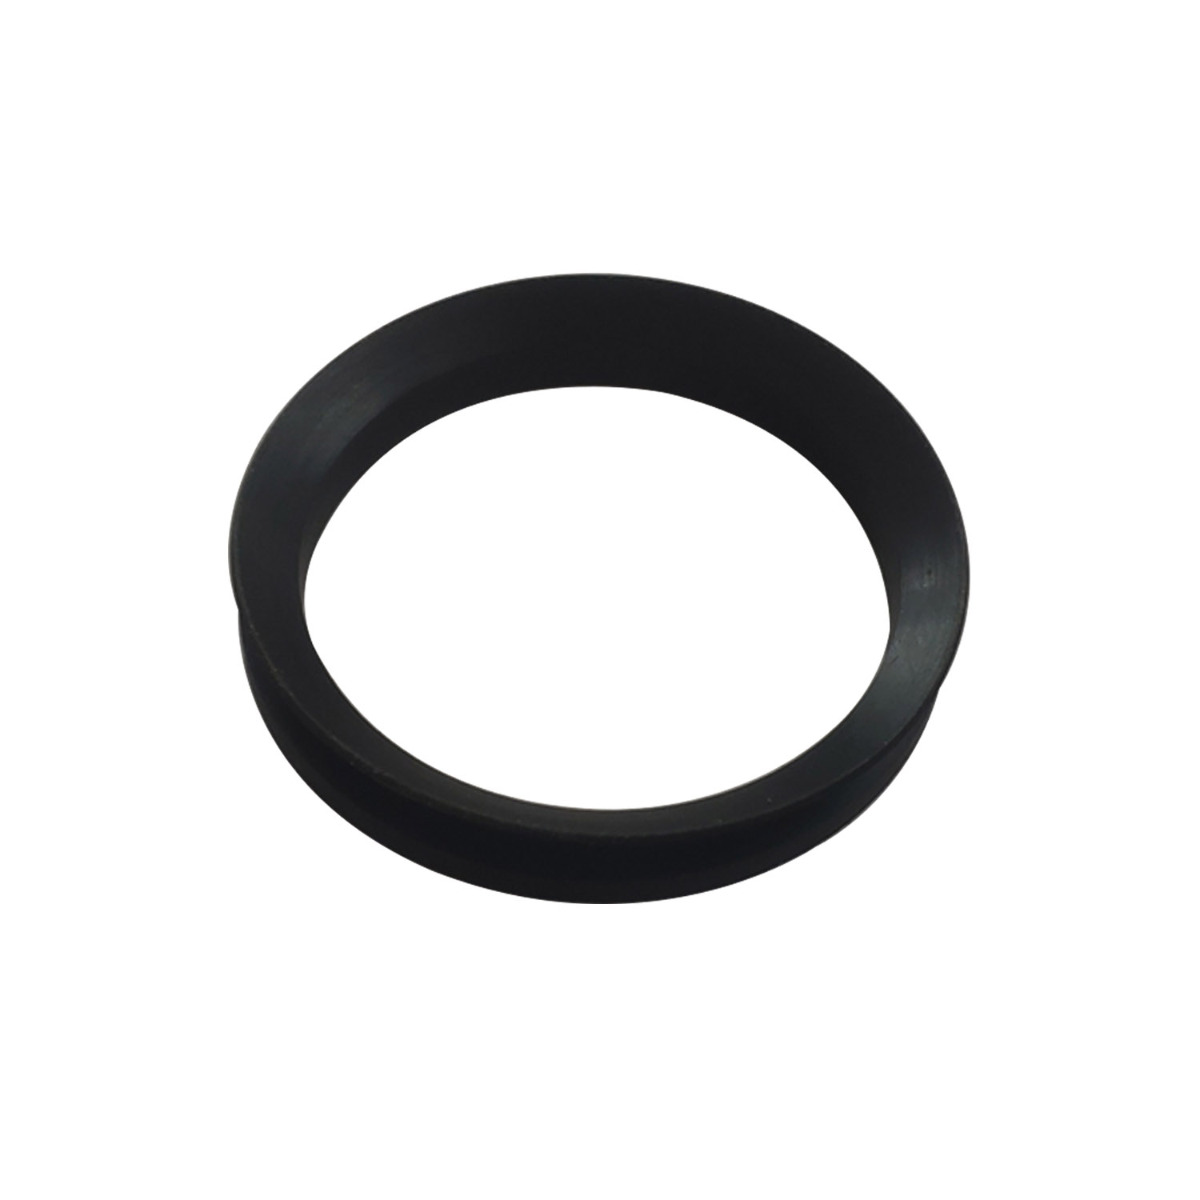 Lower Pivot Pin Seal 6651709 Compatible With Bobcat Skid Steer Loaders 553 630 631 632 641 642 643 645 653 730 731 732 741 742 743 751 753 T190 T250 T300 A300 T450 T550 T590 T180